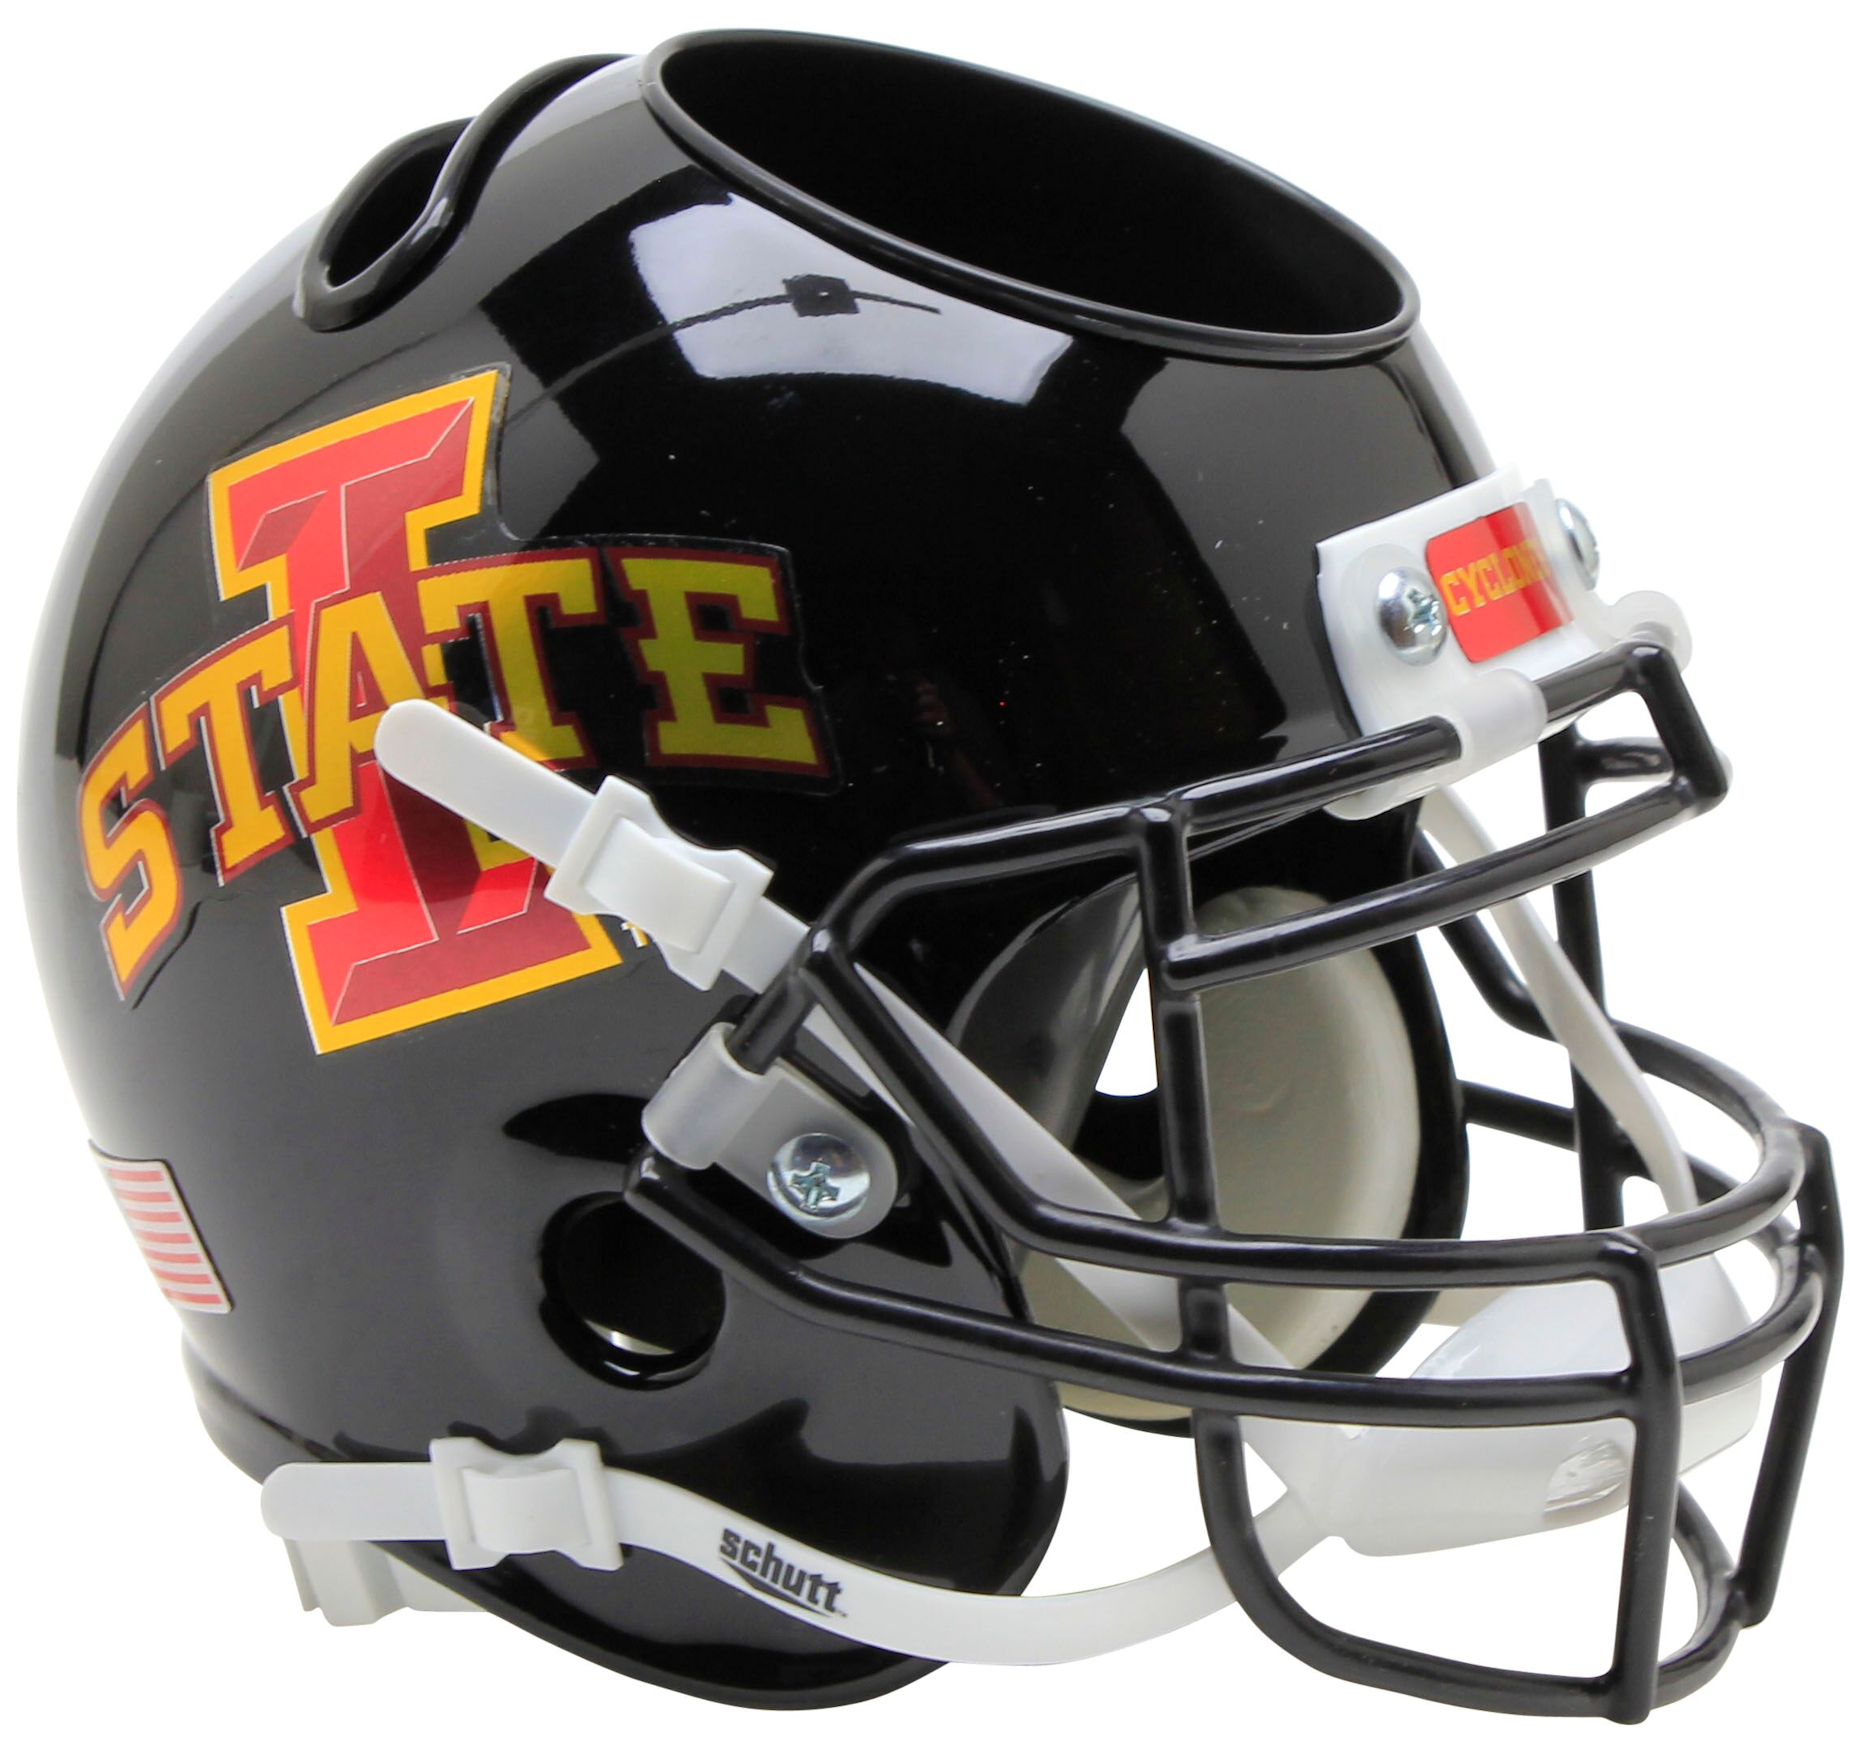 Iowa State Cyclones Miniature Football Helmet Desk Caddy <B>Black with Red Decal</B>